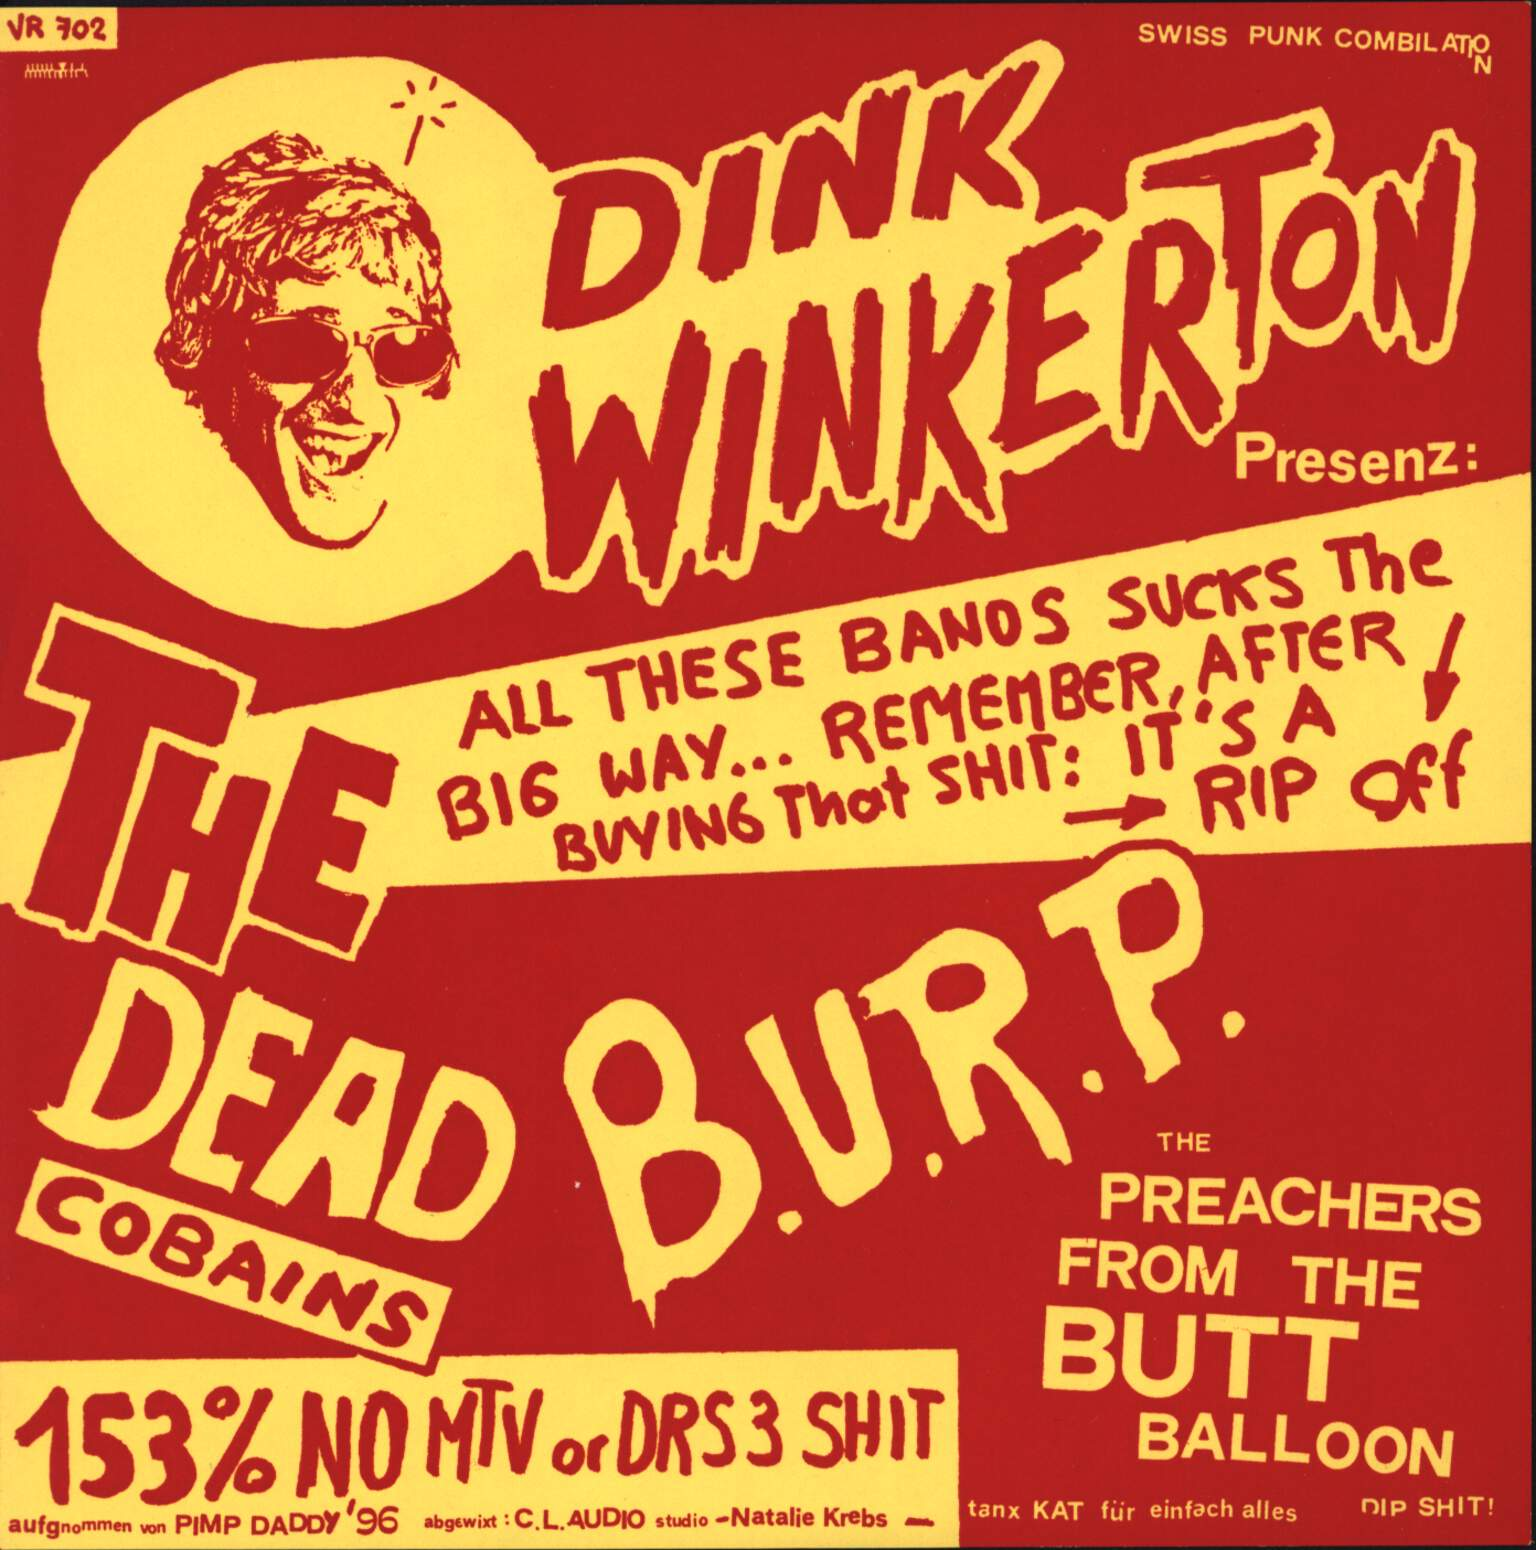 "Various: Dink Winkerton Presenz, 7"" Single (Vinyl)"